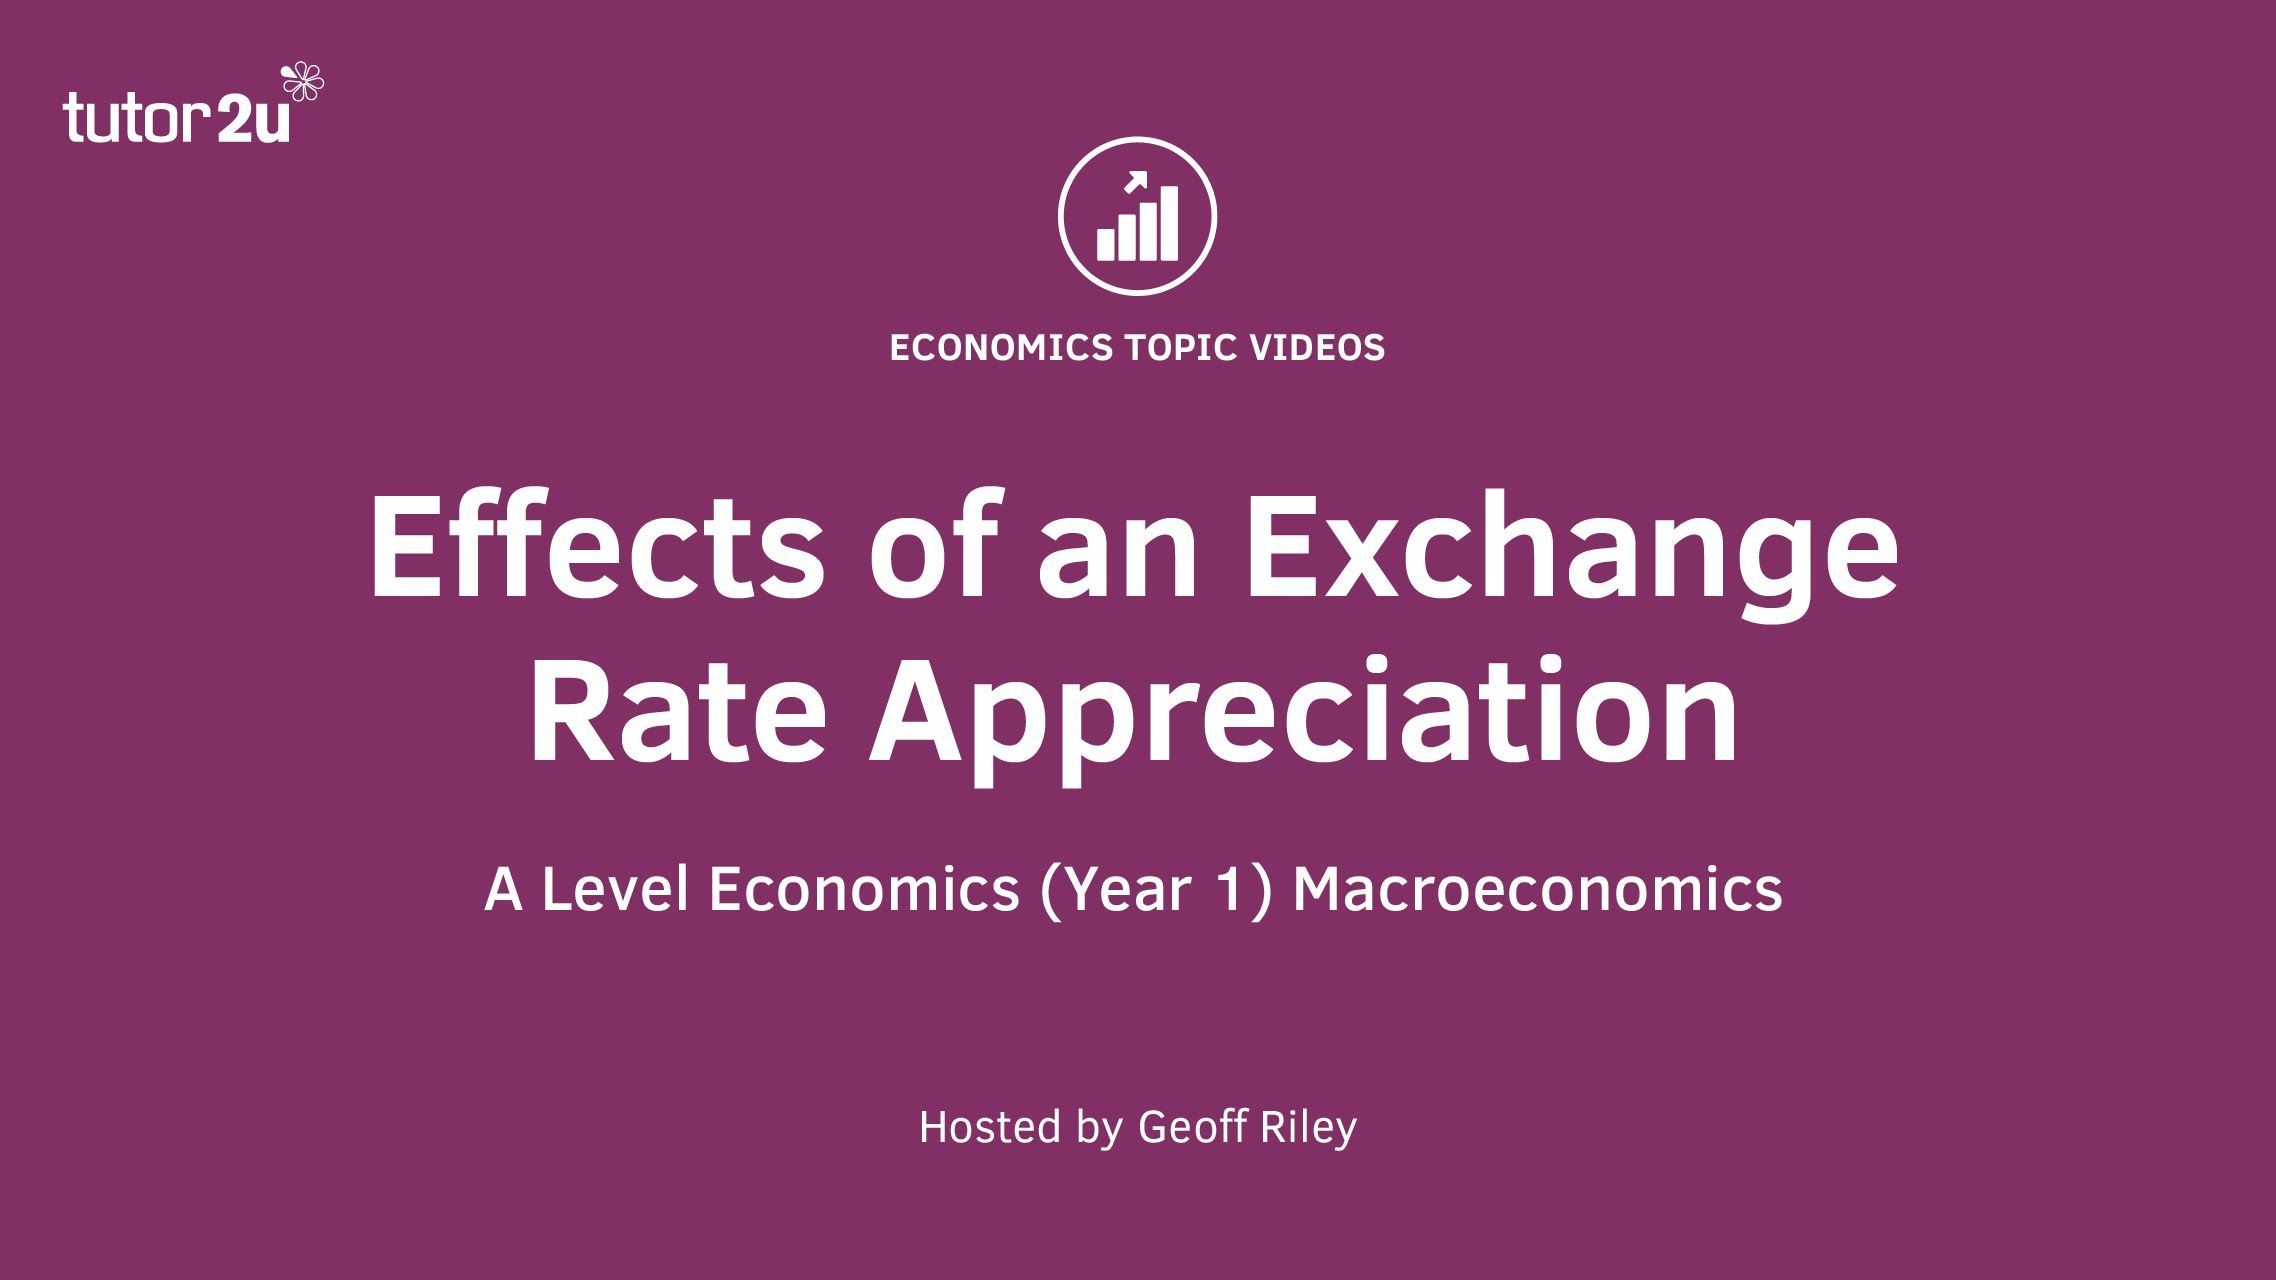 Impact of a Currency Appreciation